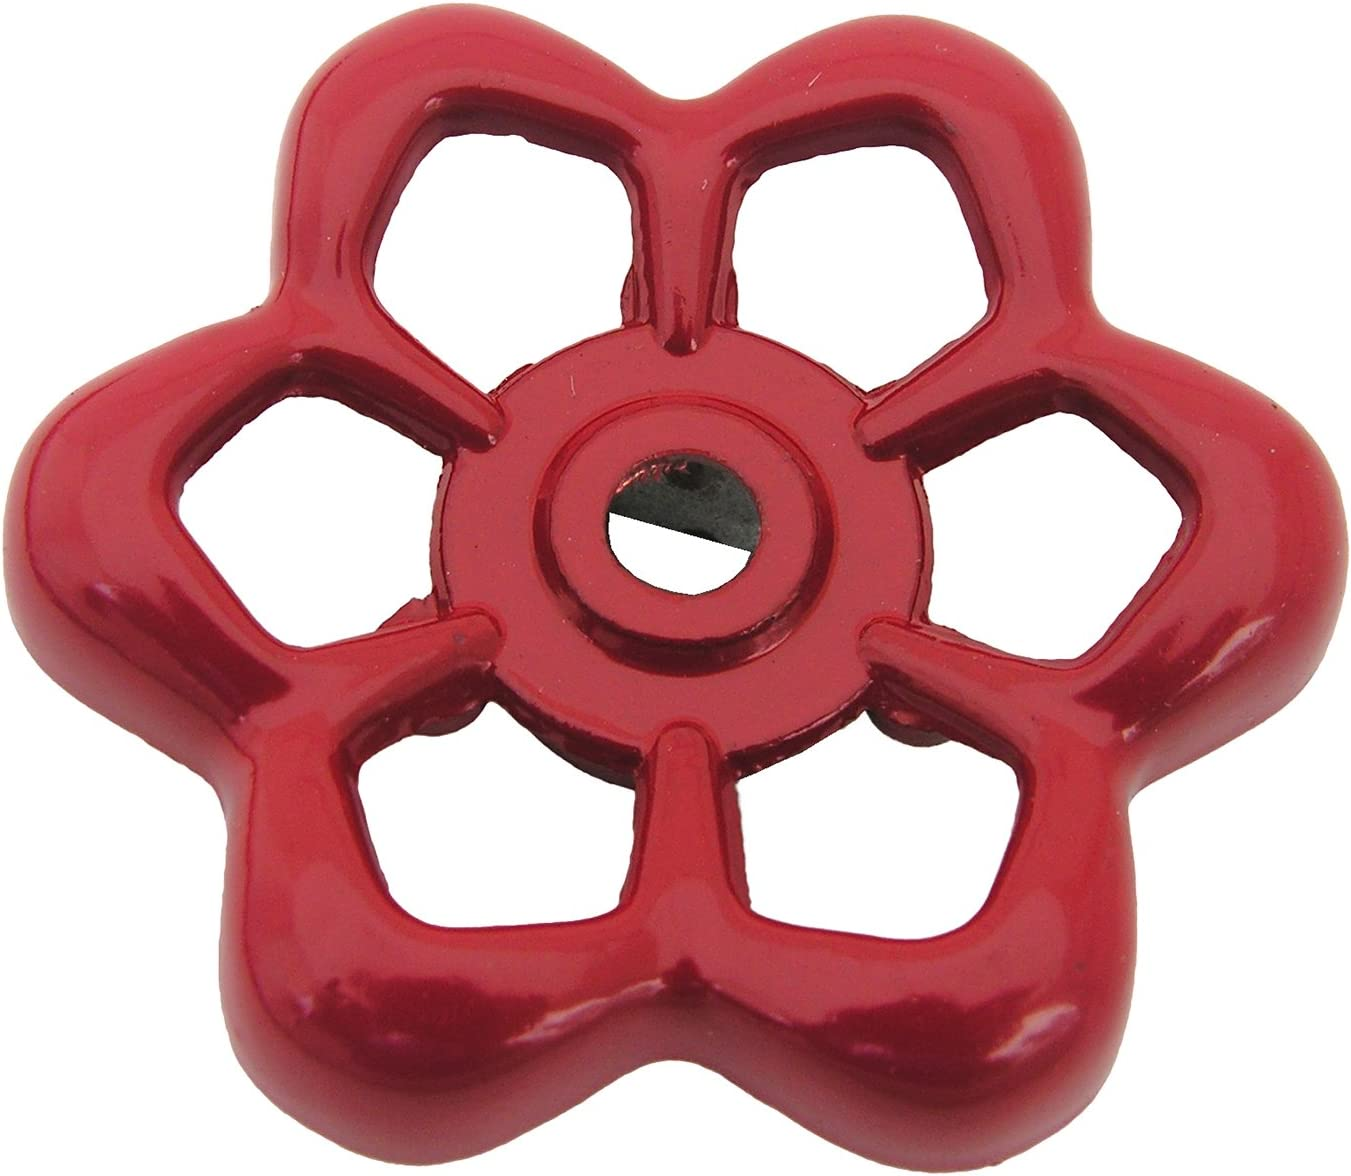 """LASCO 01-5131 Square Broach Metal Outside Faucet Hose Bibb Replacement Round Wheel Handle, 1-7/8"""", Red"""